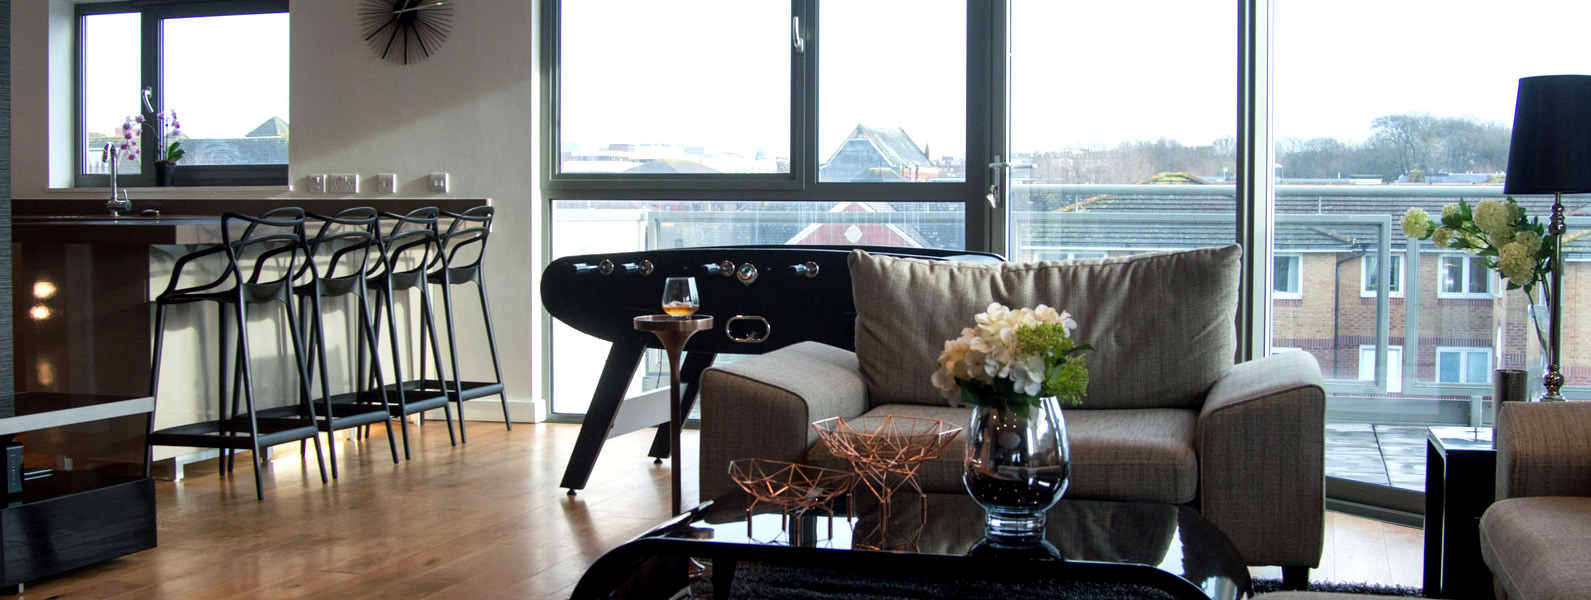 Penthouse living room, Interior design styling services by Moji Interiors in Hove